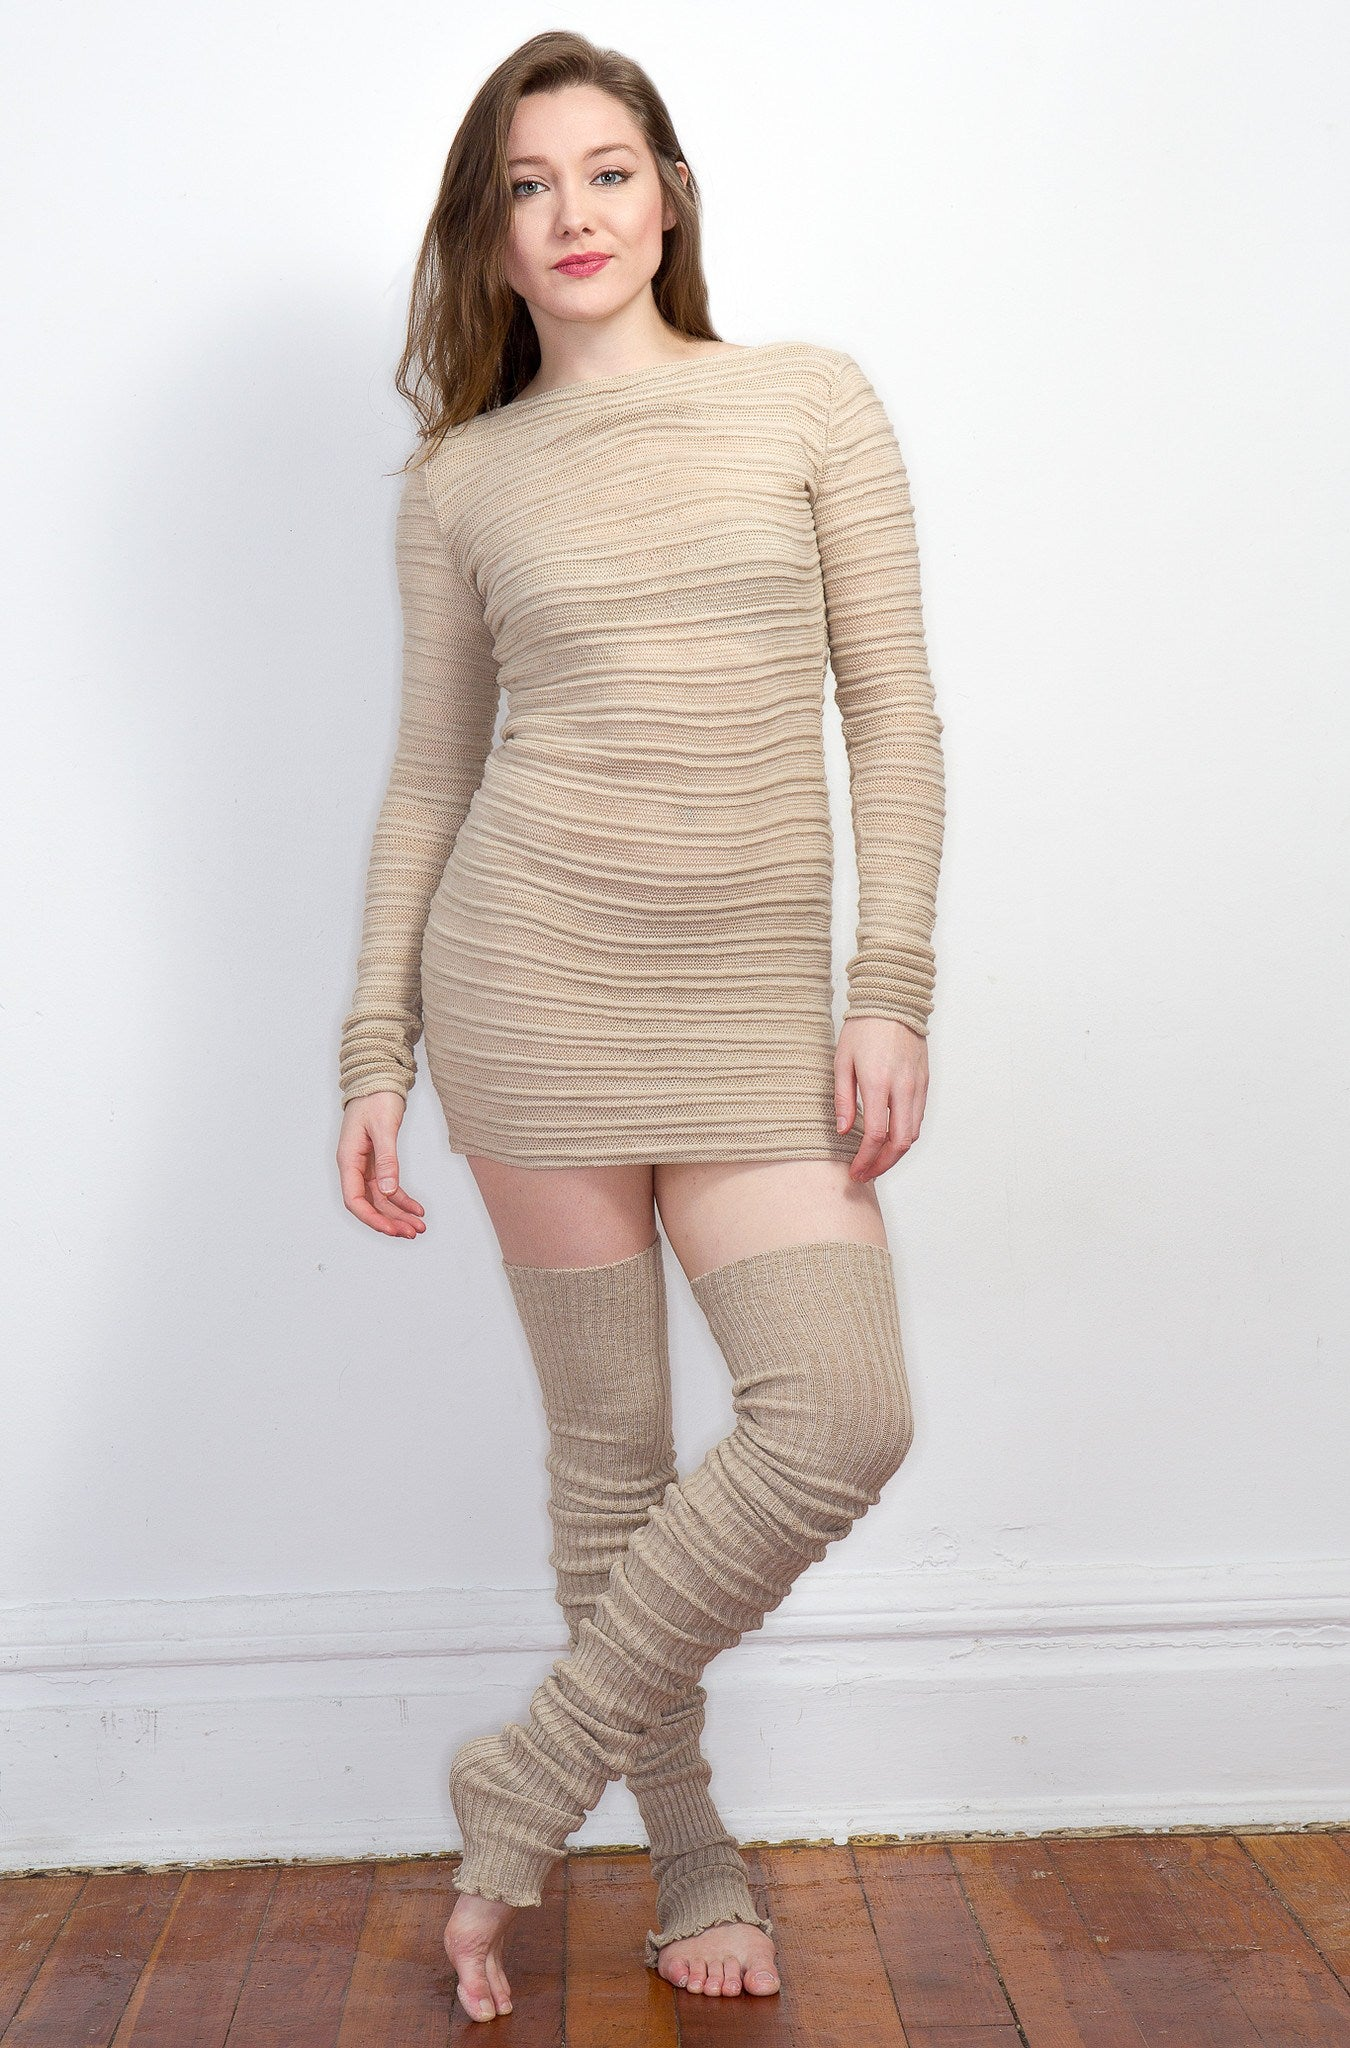 Super Long 40 Inch Thigh High Leg Warmers & Yoga & Dance Mesh Shadow Stripe Sweater Top KD dance @KDdanceNewYork #MadeInUSA - 7